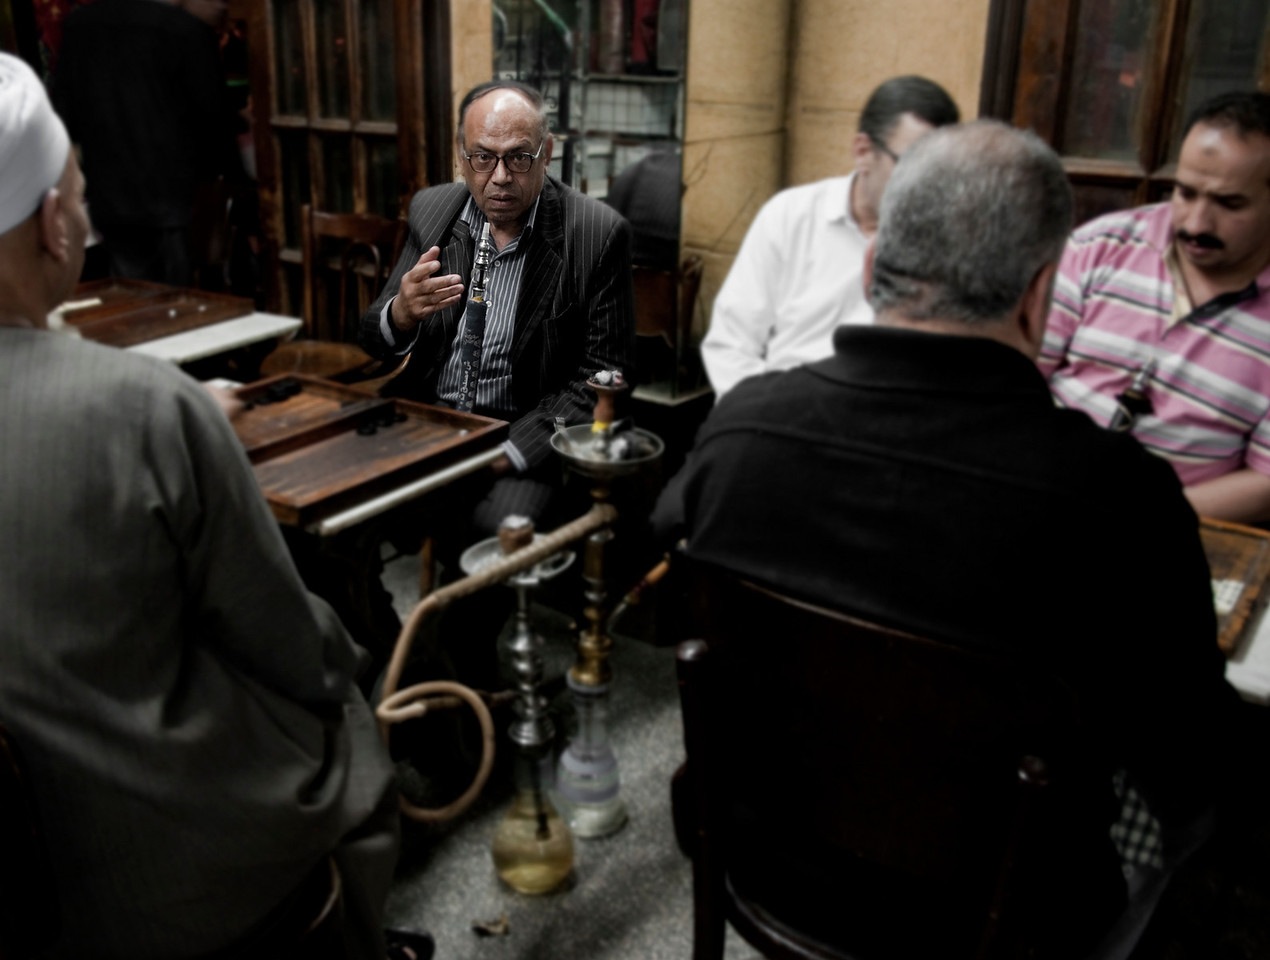 Cairenes playing Backgammon and smoking shisha in one of the many Ahwas or cafes found around Cairo. <br /> <br /> Egypt, 2010.